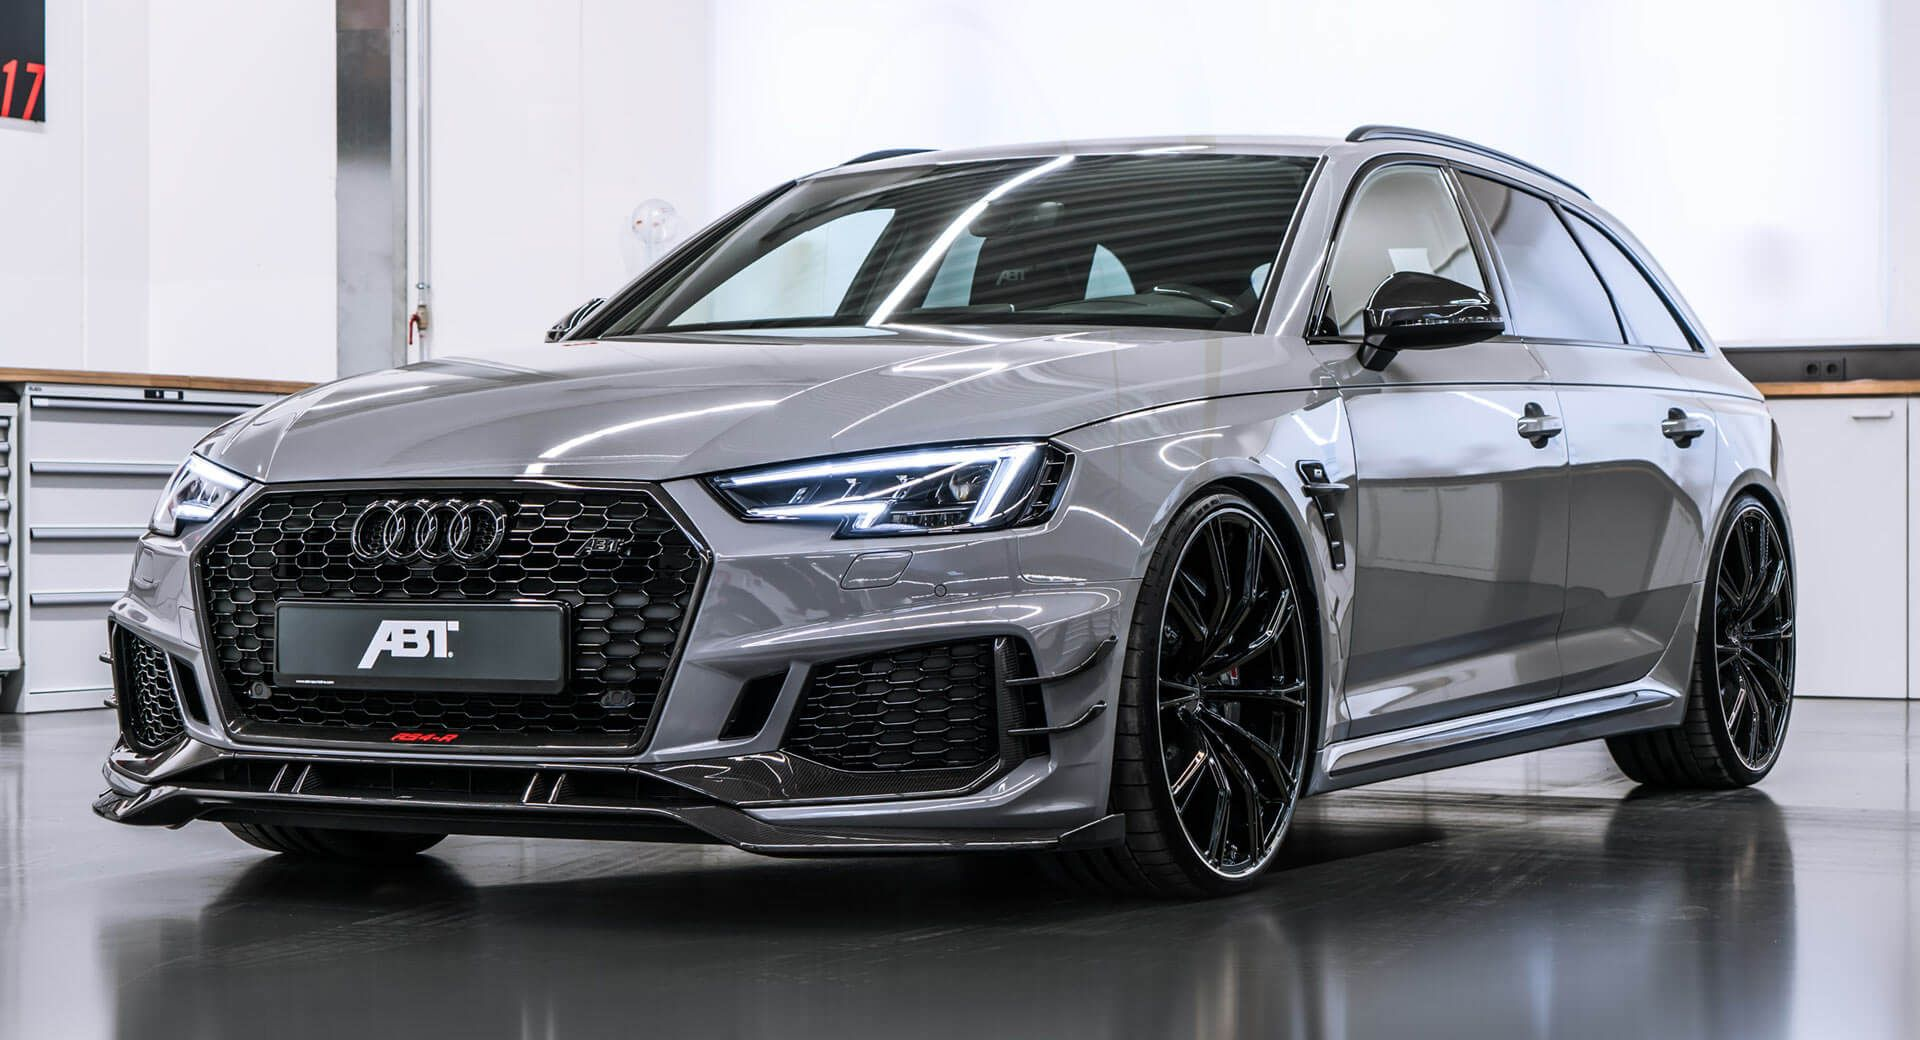 Abt S 530ps Audi Rs4 R Avant Is All The Super Estate You Ll Ever Need Carscoops Audi Rs Audi Wagon Audi